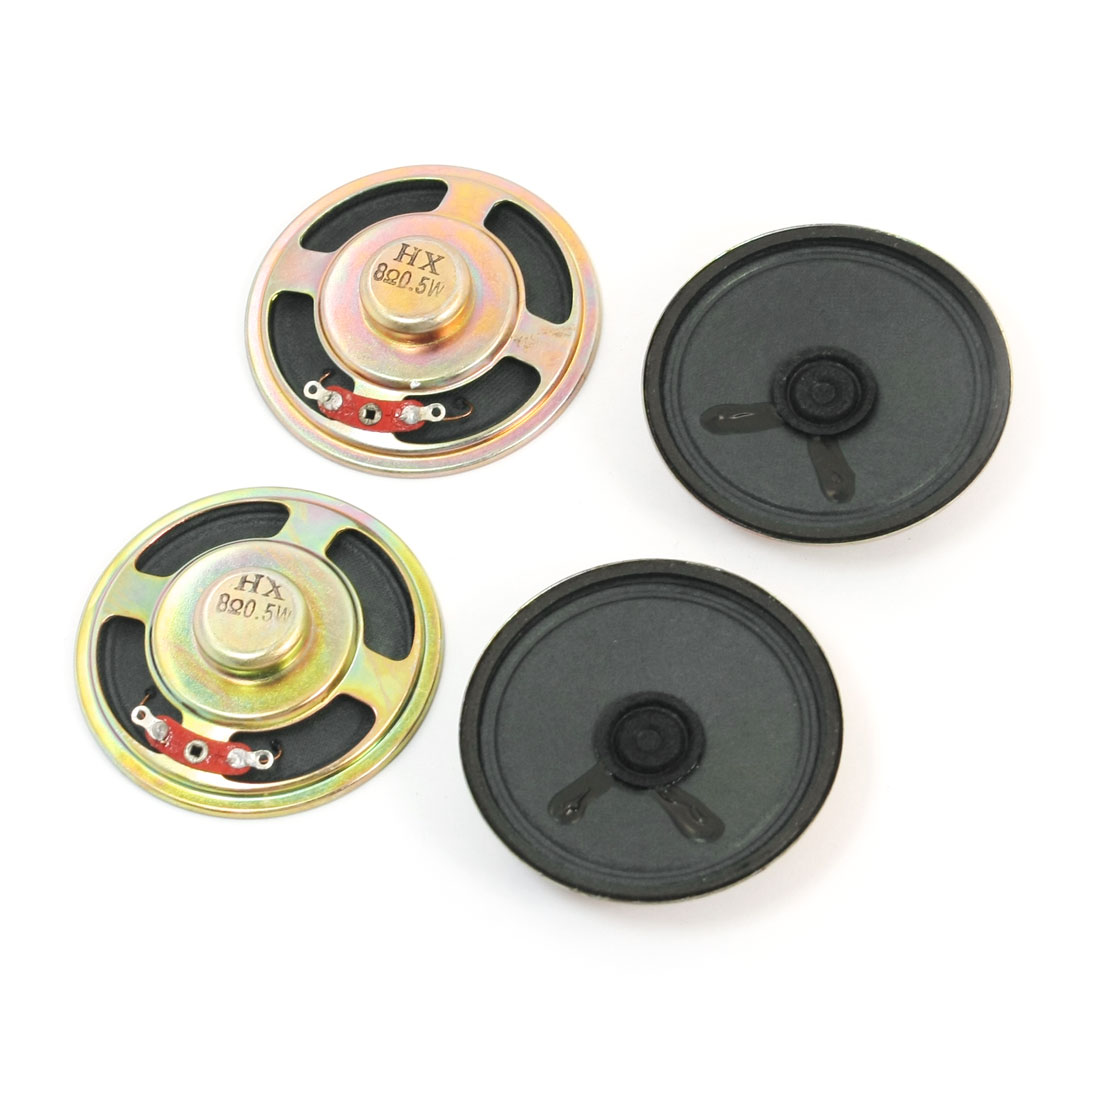 4Pcs 0.5W 8 Ohm 57mm Dia Round Metal Shell Internal Magnet Electronic Toys Music Player Speaker Loudspeaker